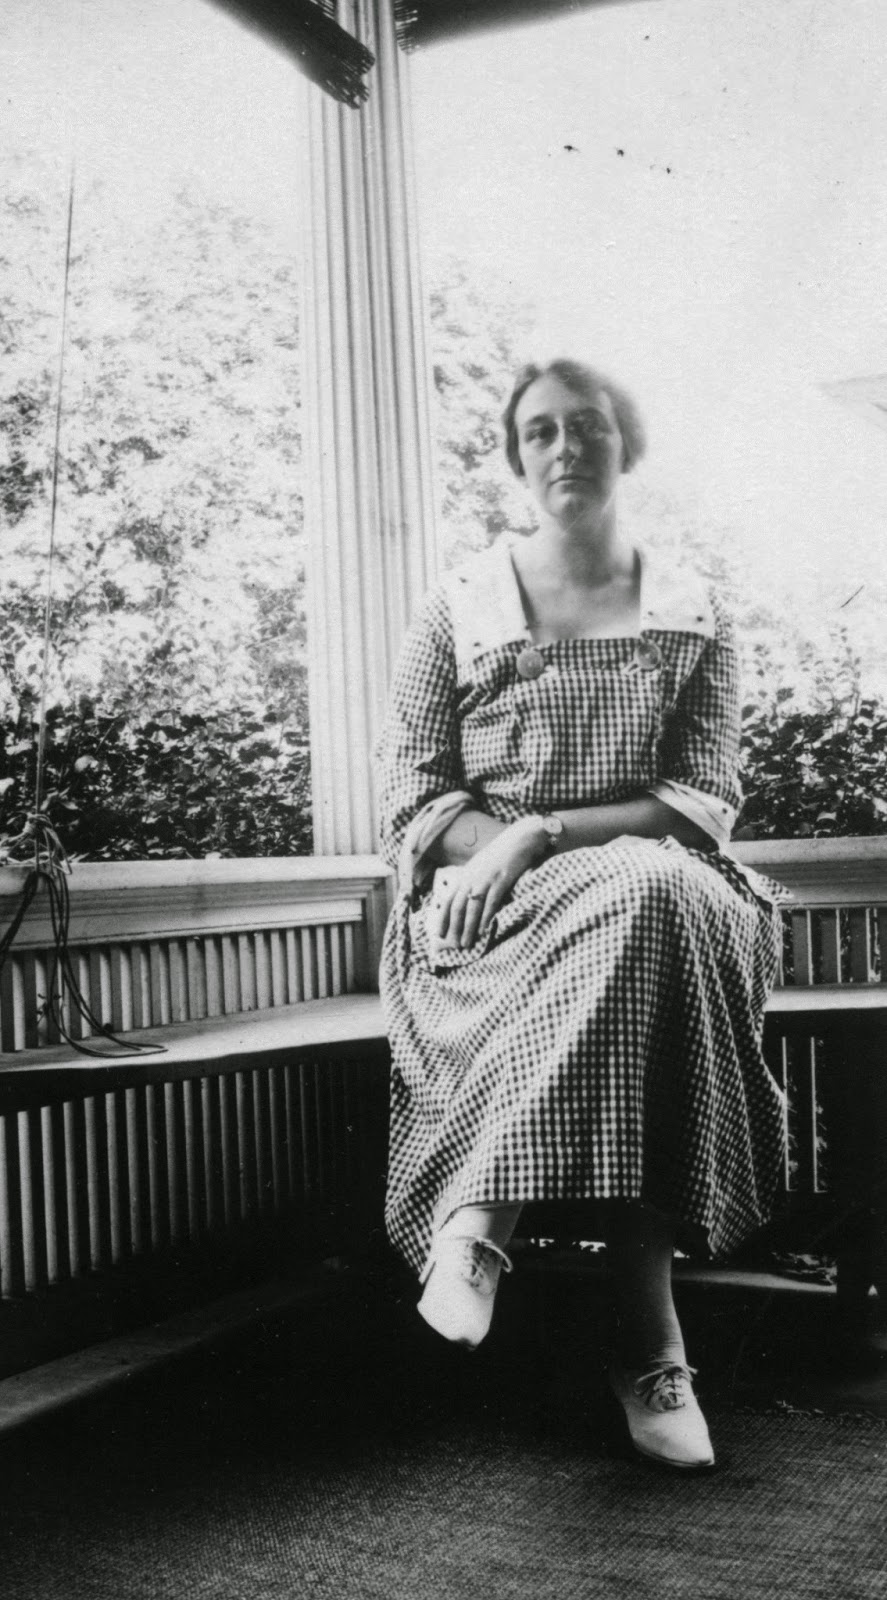 Photo of a young woman sitting on a porch, c. 1920